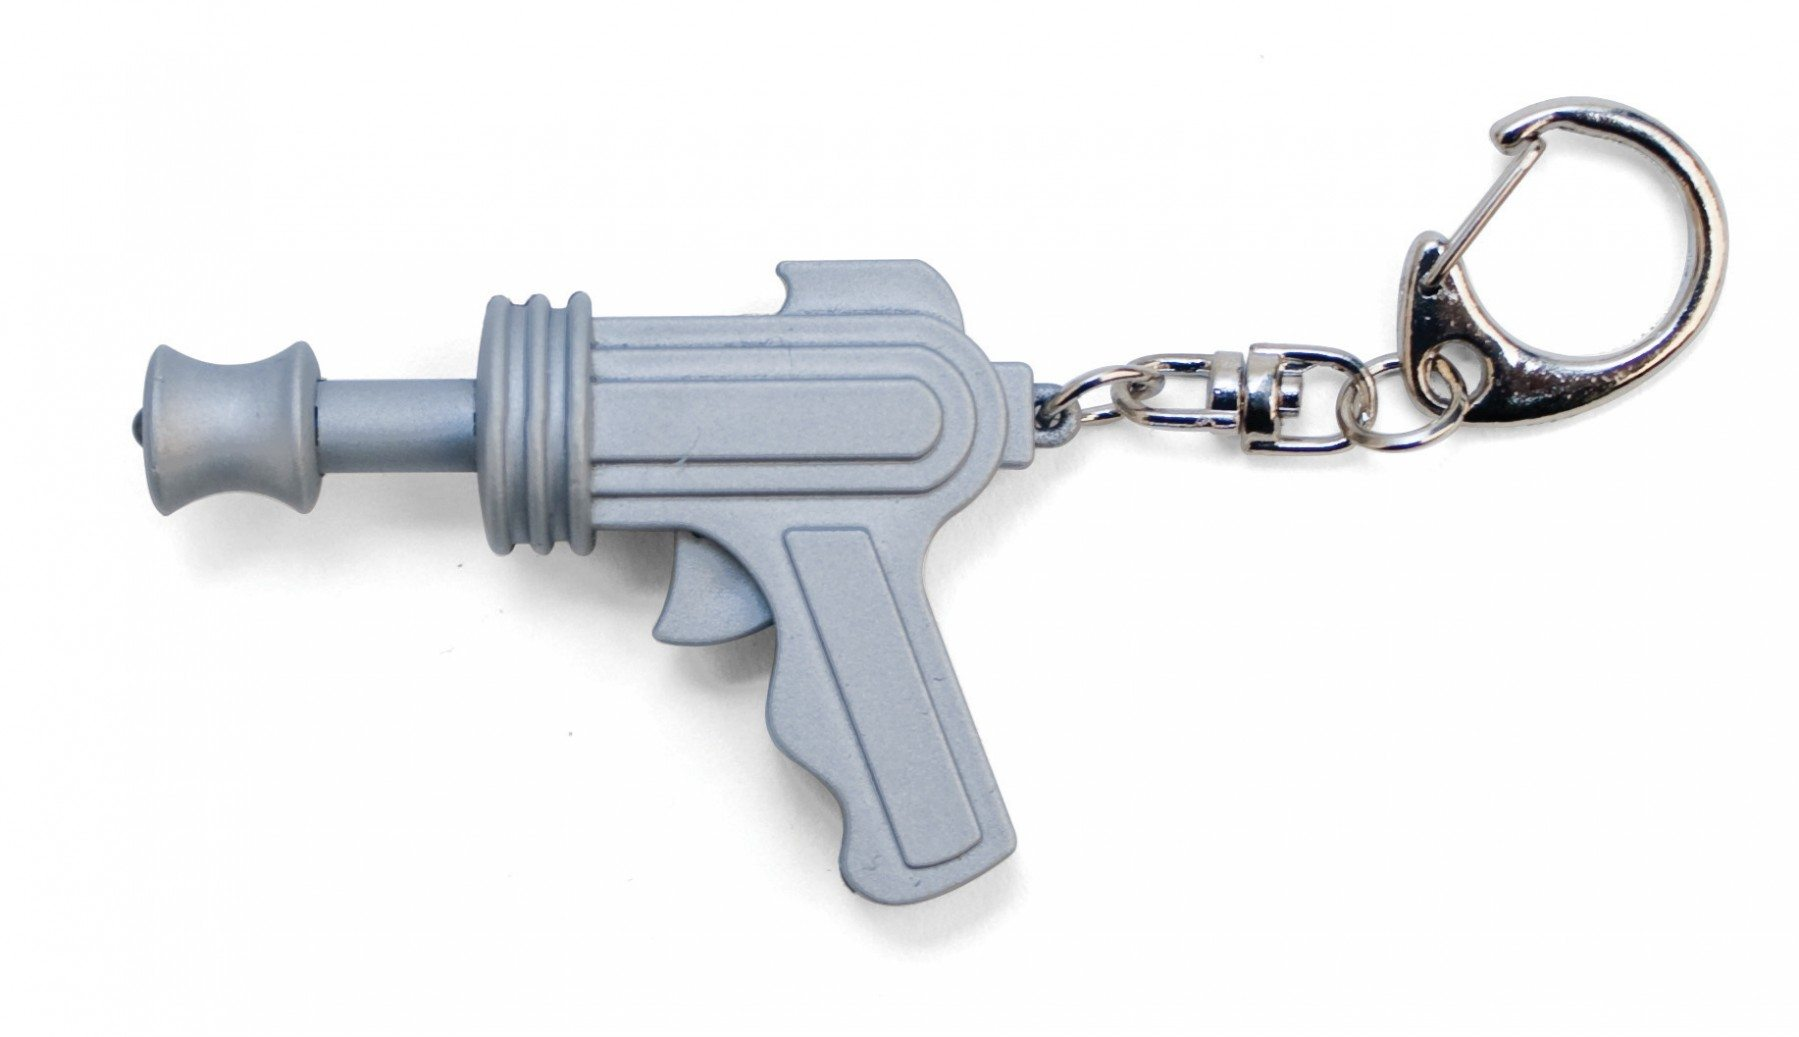 LED-sleutelhanger space gun